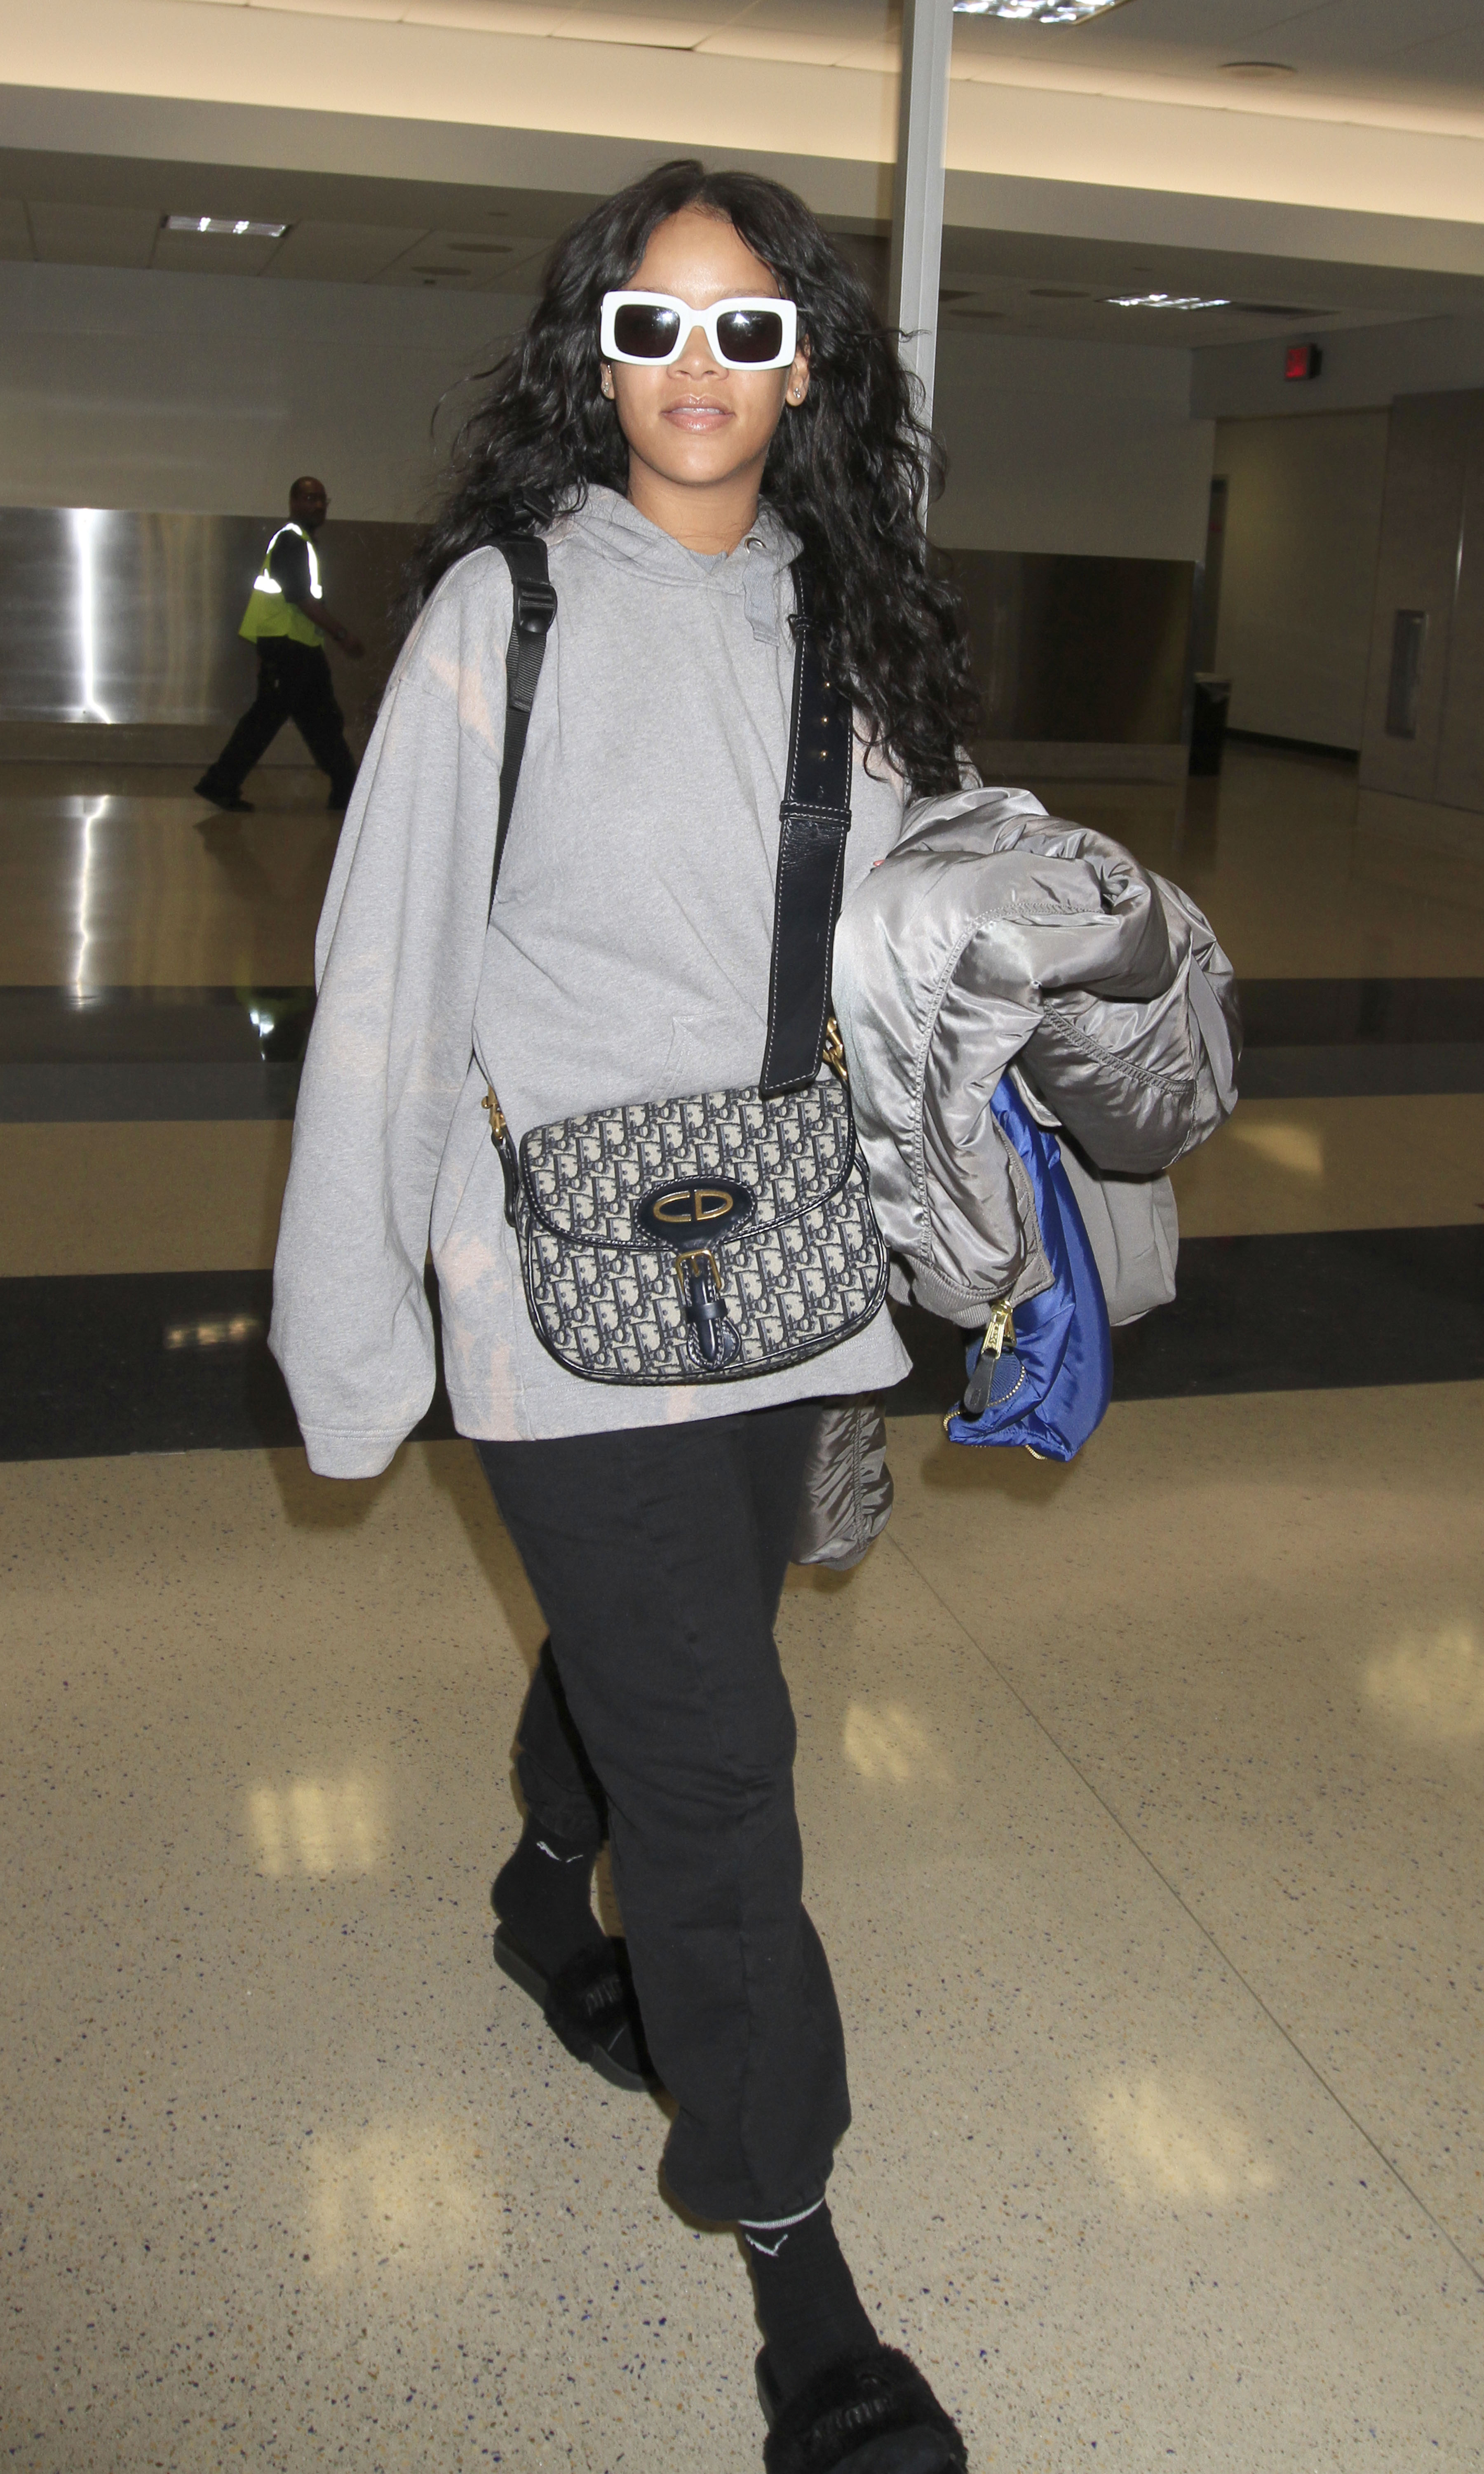 Rihanna spotted in LA after reports that she was getting cozy with an Olympic fencer.  The iconic musician was seen in an oversized sweatshirt, black sweatpants and white sunglasses.  Rihanna was in good spirits for her arrival into LAX. <P> Pictured: Rihanna <B>Ref: SPL1492735  050517  </B><BR/> Picture by: Sharky/Polite Paparazzi/SPLASH <BR/> </P><P> <B>Splash News and Pictures</B><BR/> Los Angeles:310-821-2666<BR/> New York:212-619-2666<BR/> London:870-934-2666<BR/> <span id=